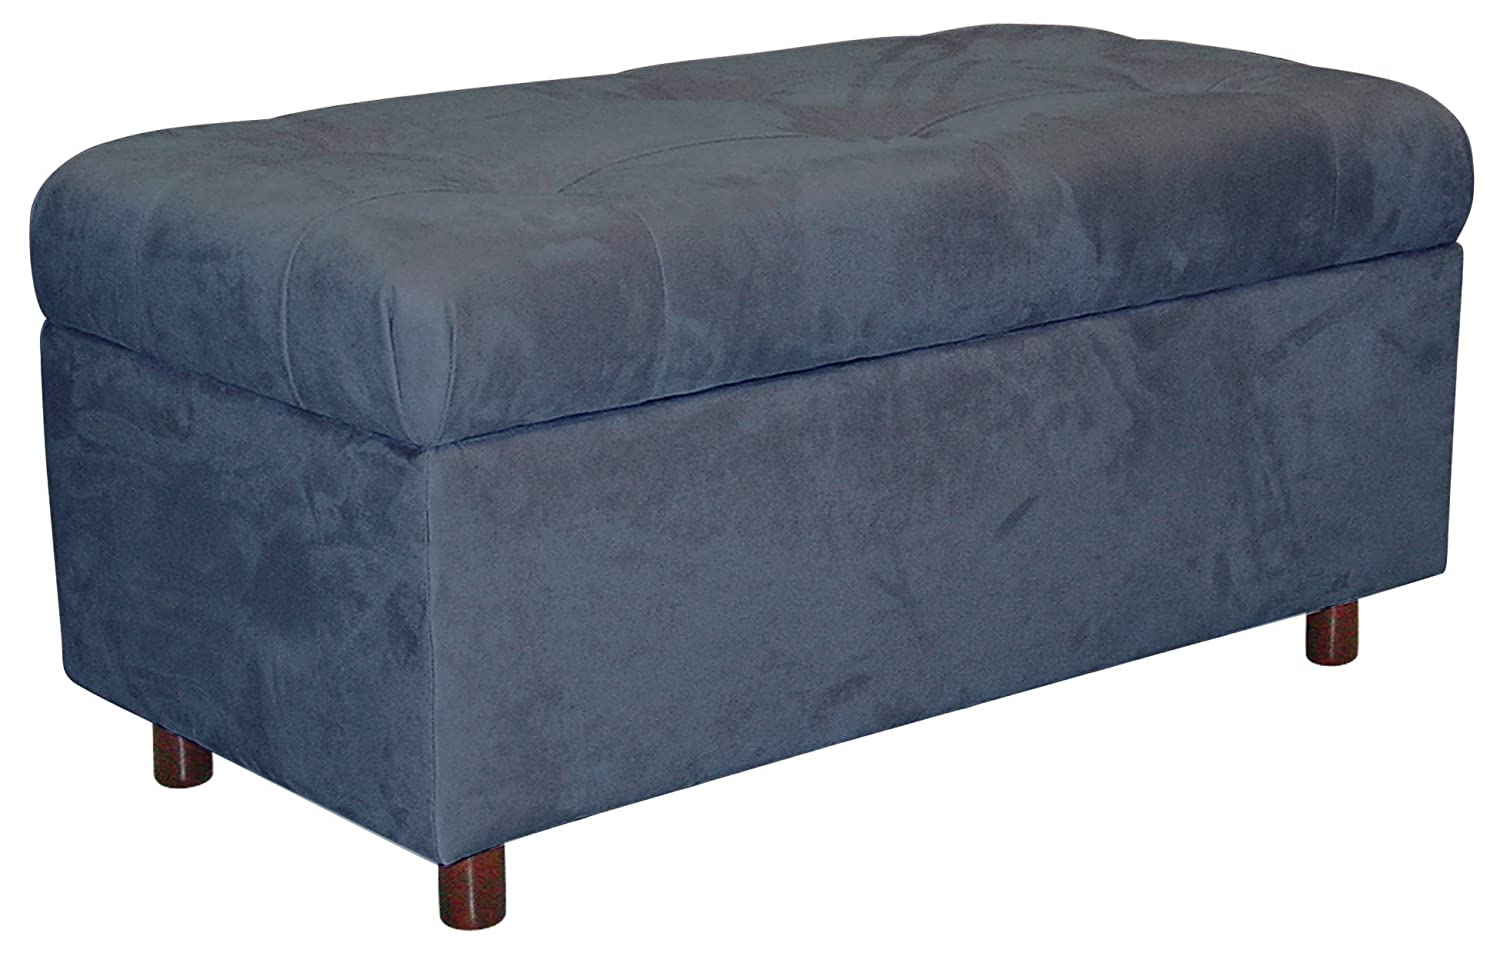 Amazon.com Skyline Furniture Belden Tufted Storage Bench by in Red Micro-suede Kitchen u0026 Dining  sc 1 st  Amazon.com : purple storage bench  - Aquiesqueretaro.Com